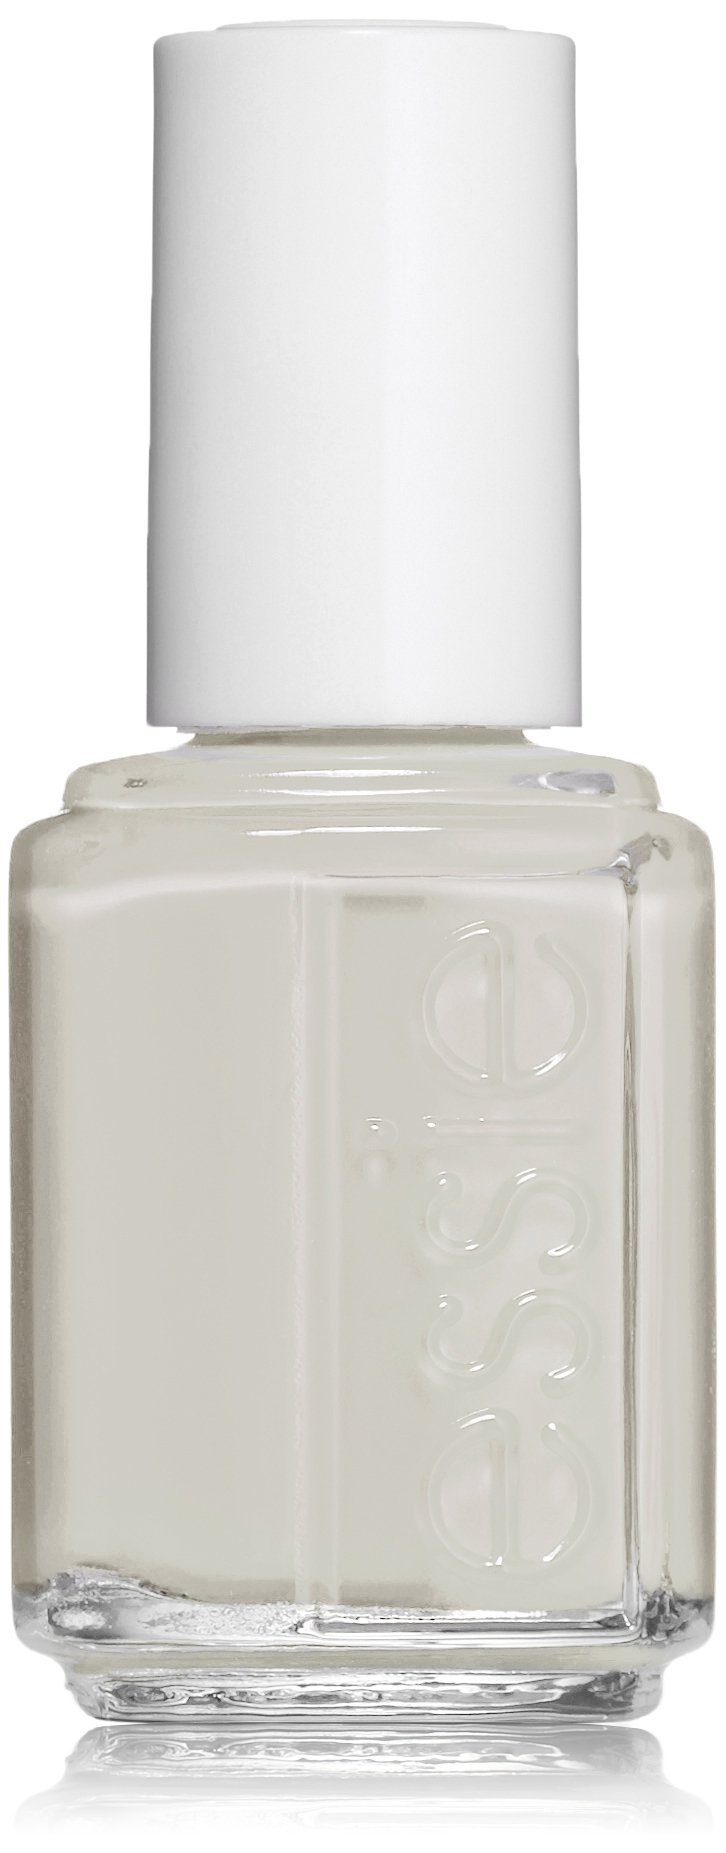 Essie Nail Polish Bottle Dimensions - To Bend Light